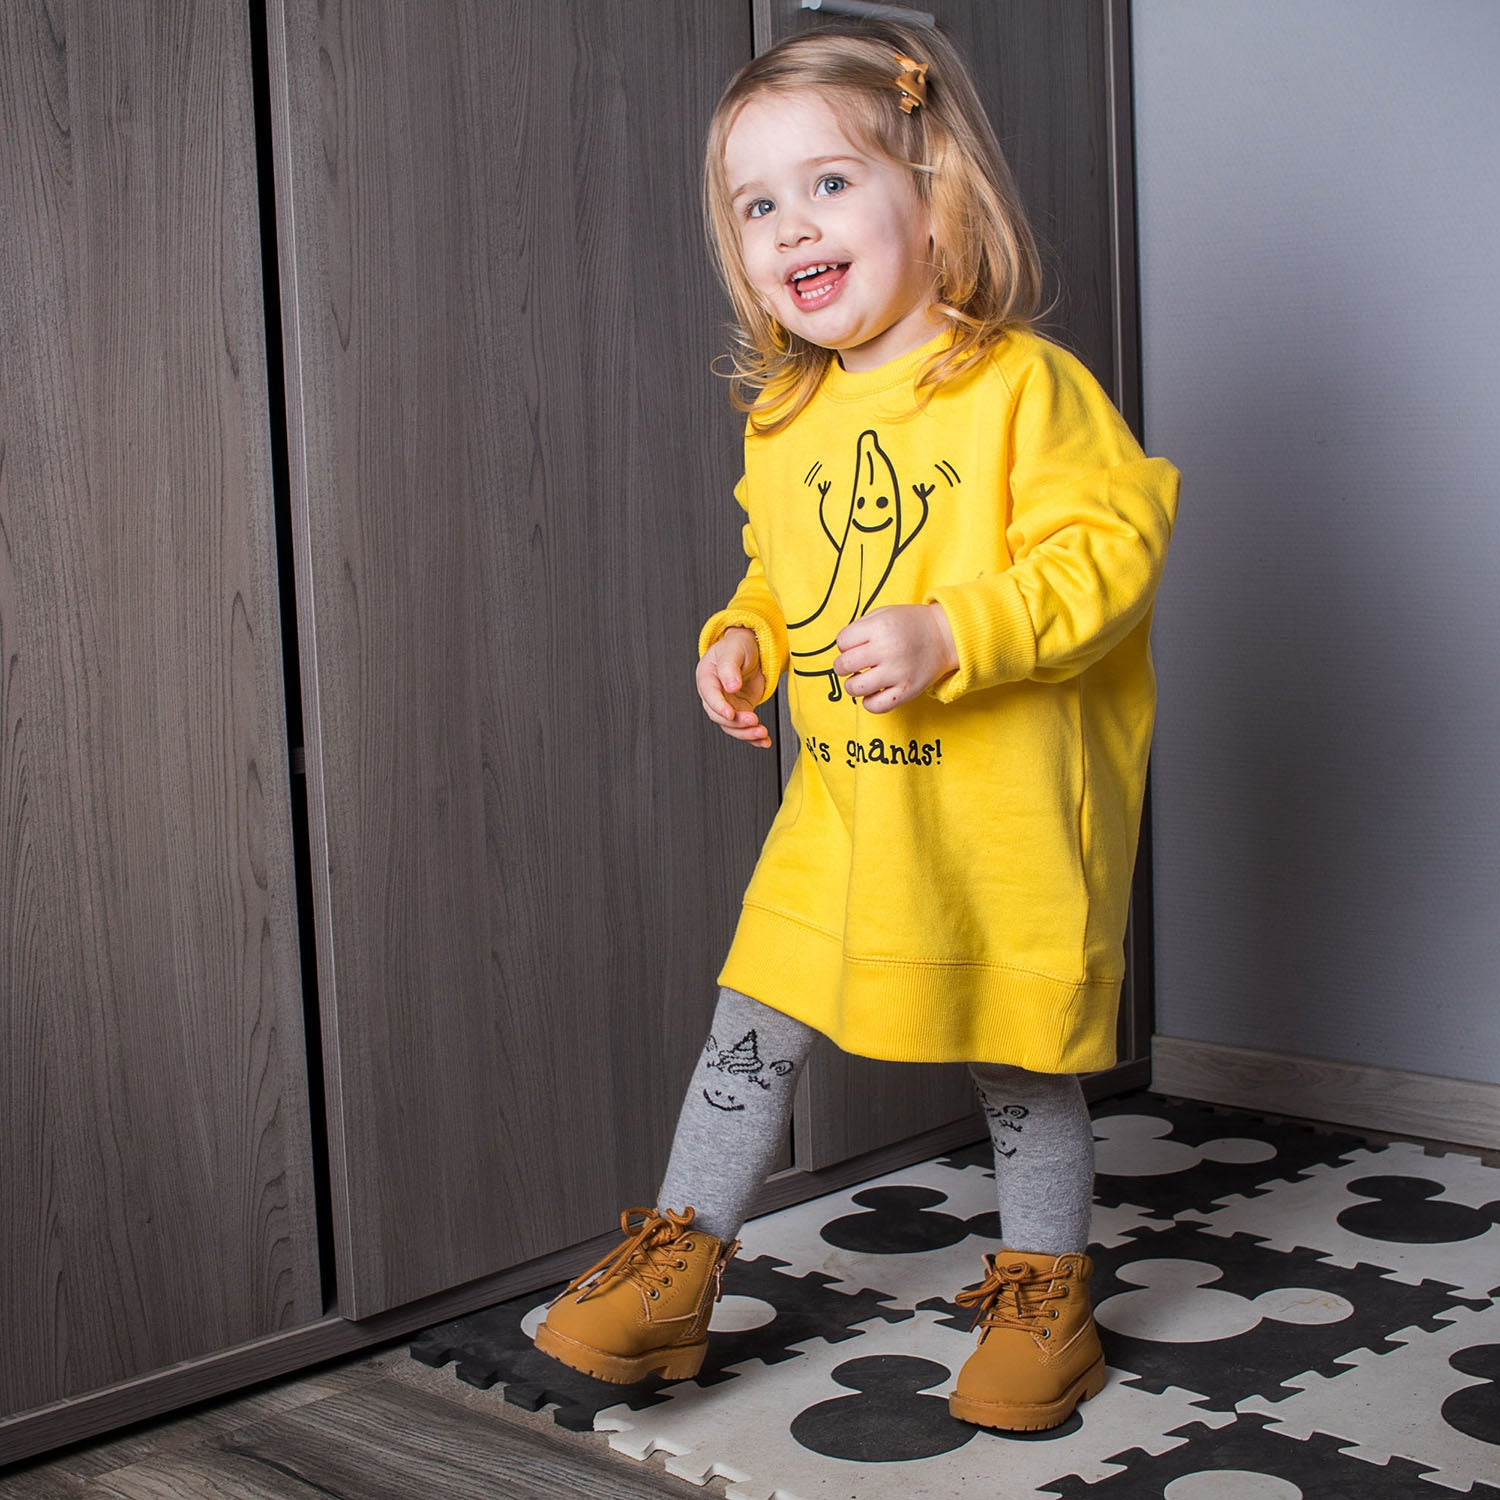 'Let's go bananas' kids sweater